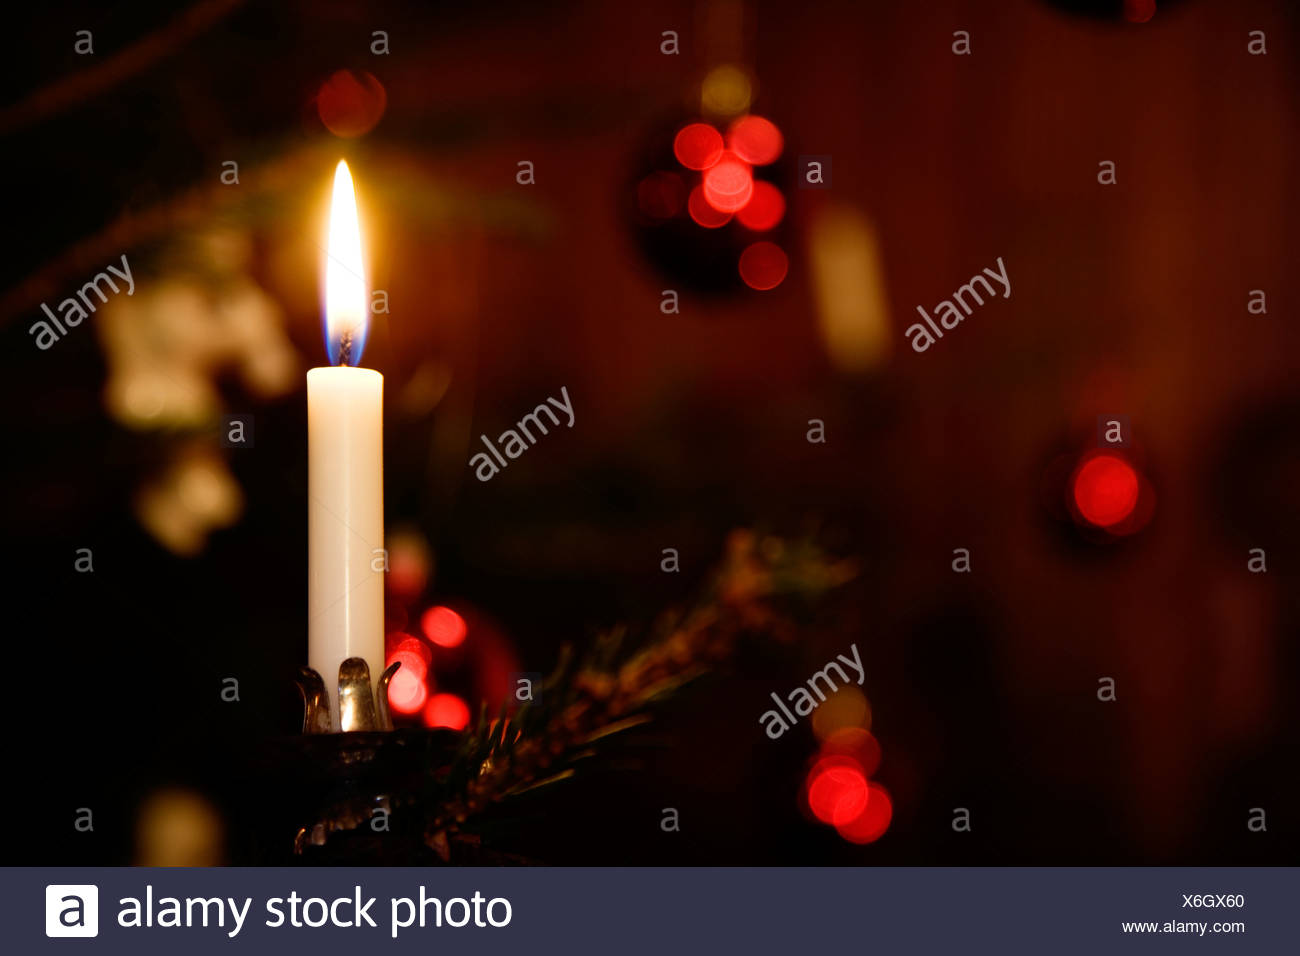 A candle in a Christmas tree close-up. - Stock Image